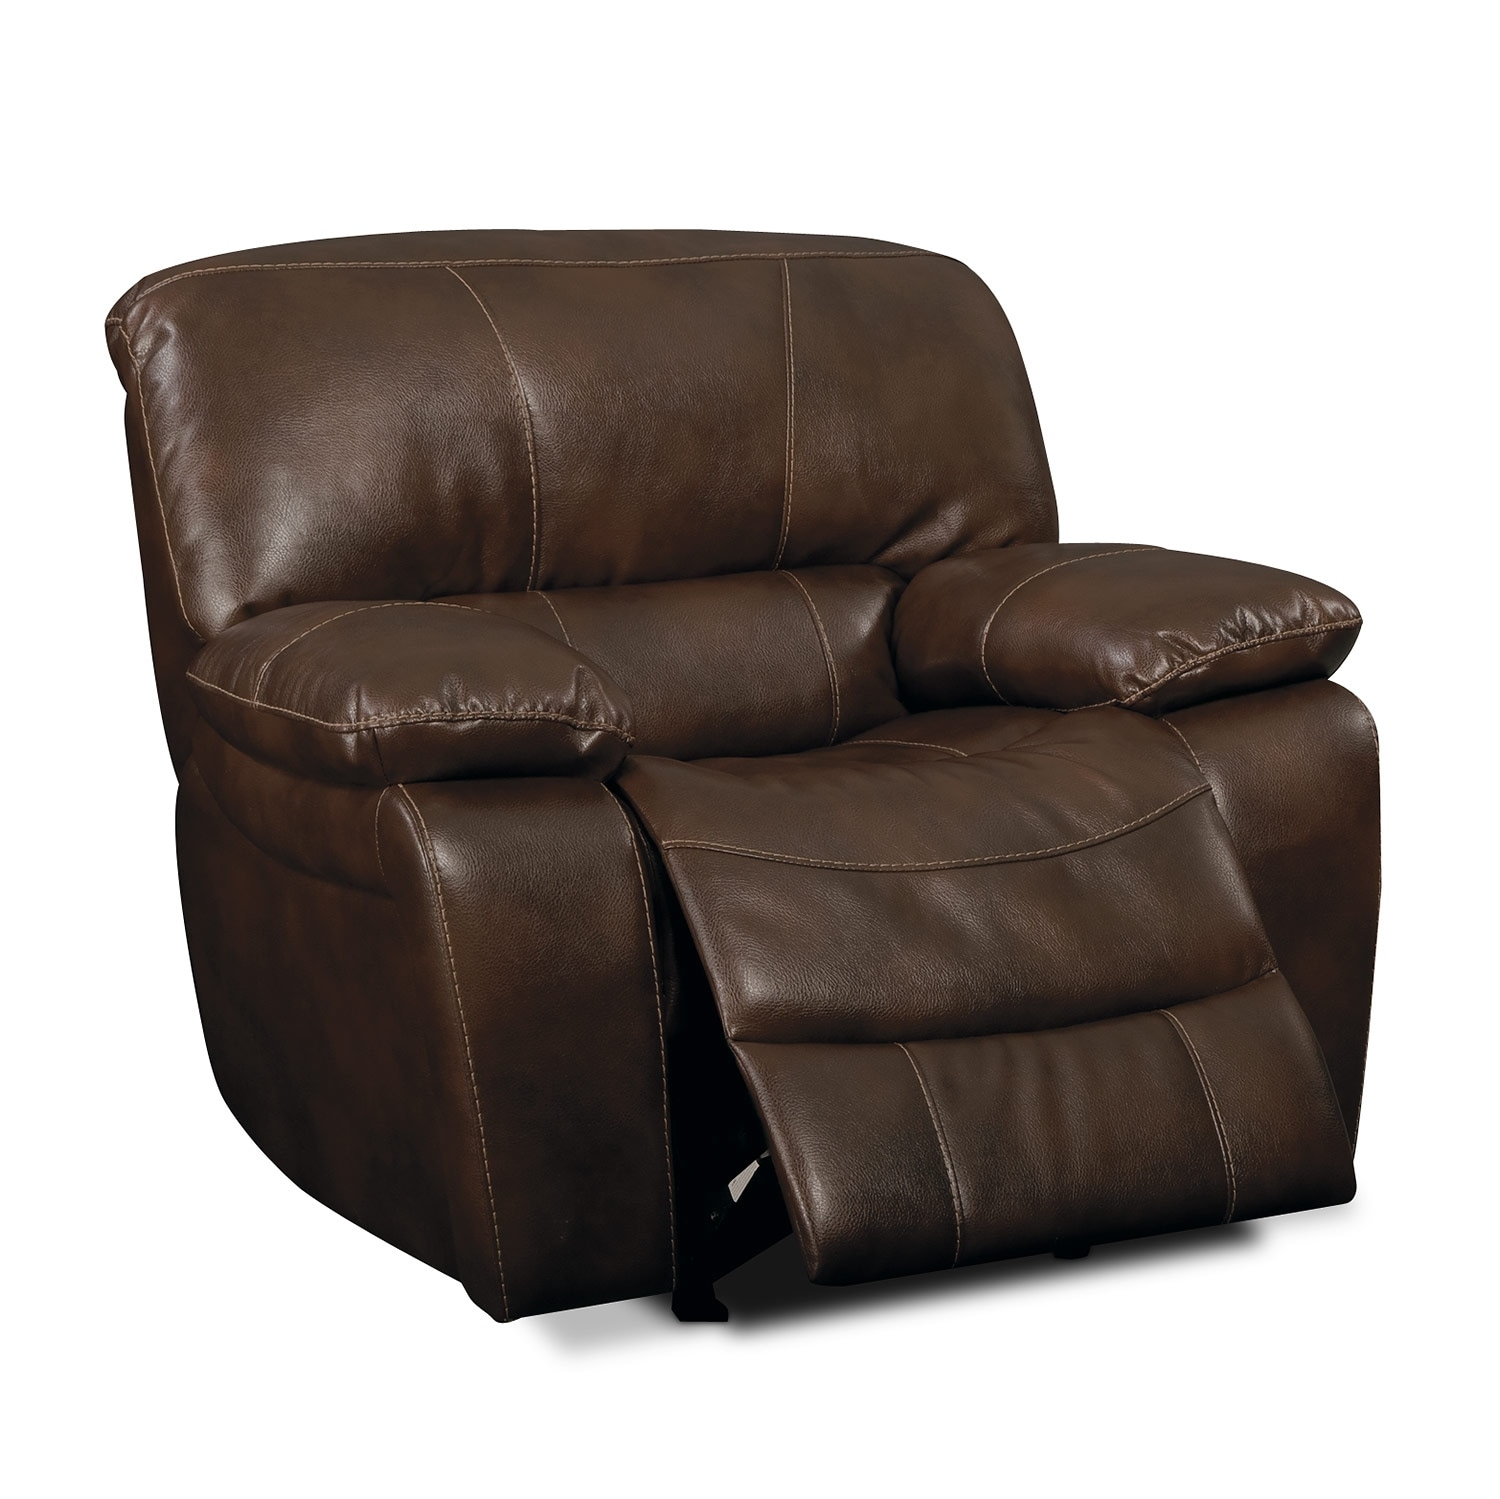 Grove Park Ii Leather Glider Recliner Value City Furniture